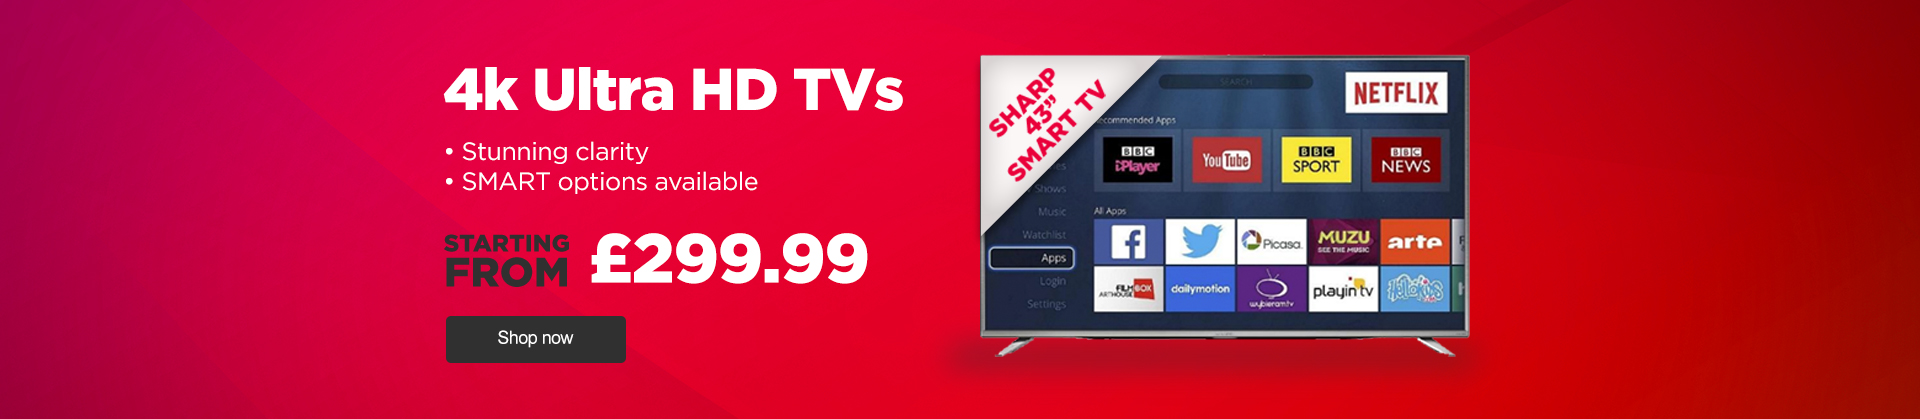 Upgrade your viewing to 4K clarity from just £299.99